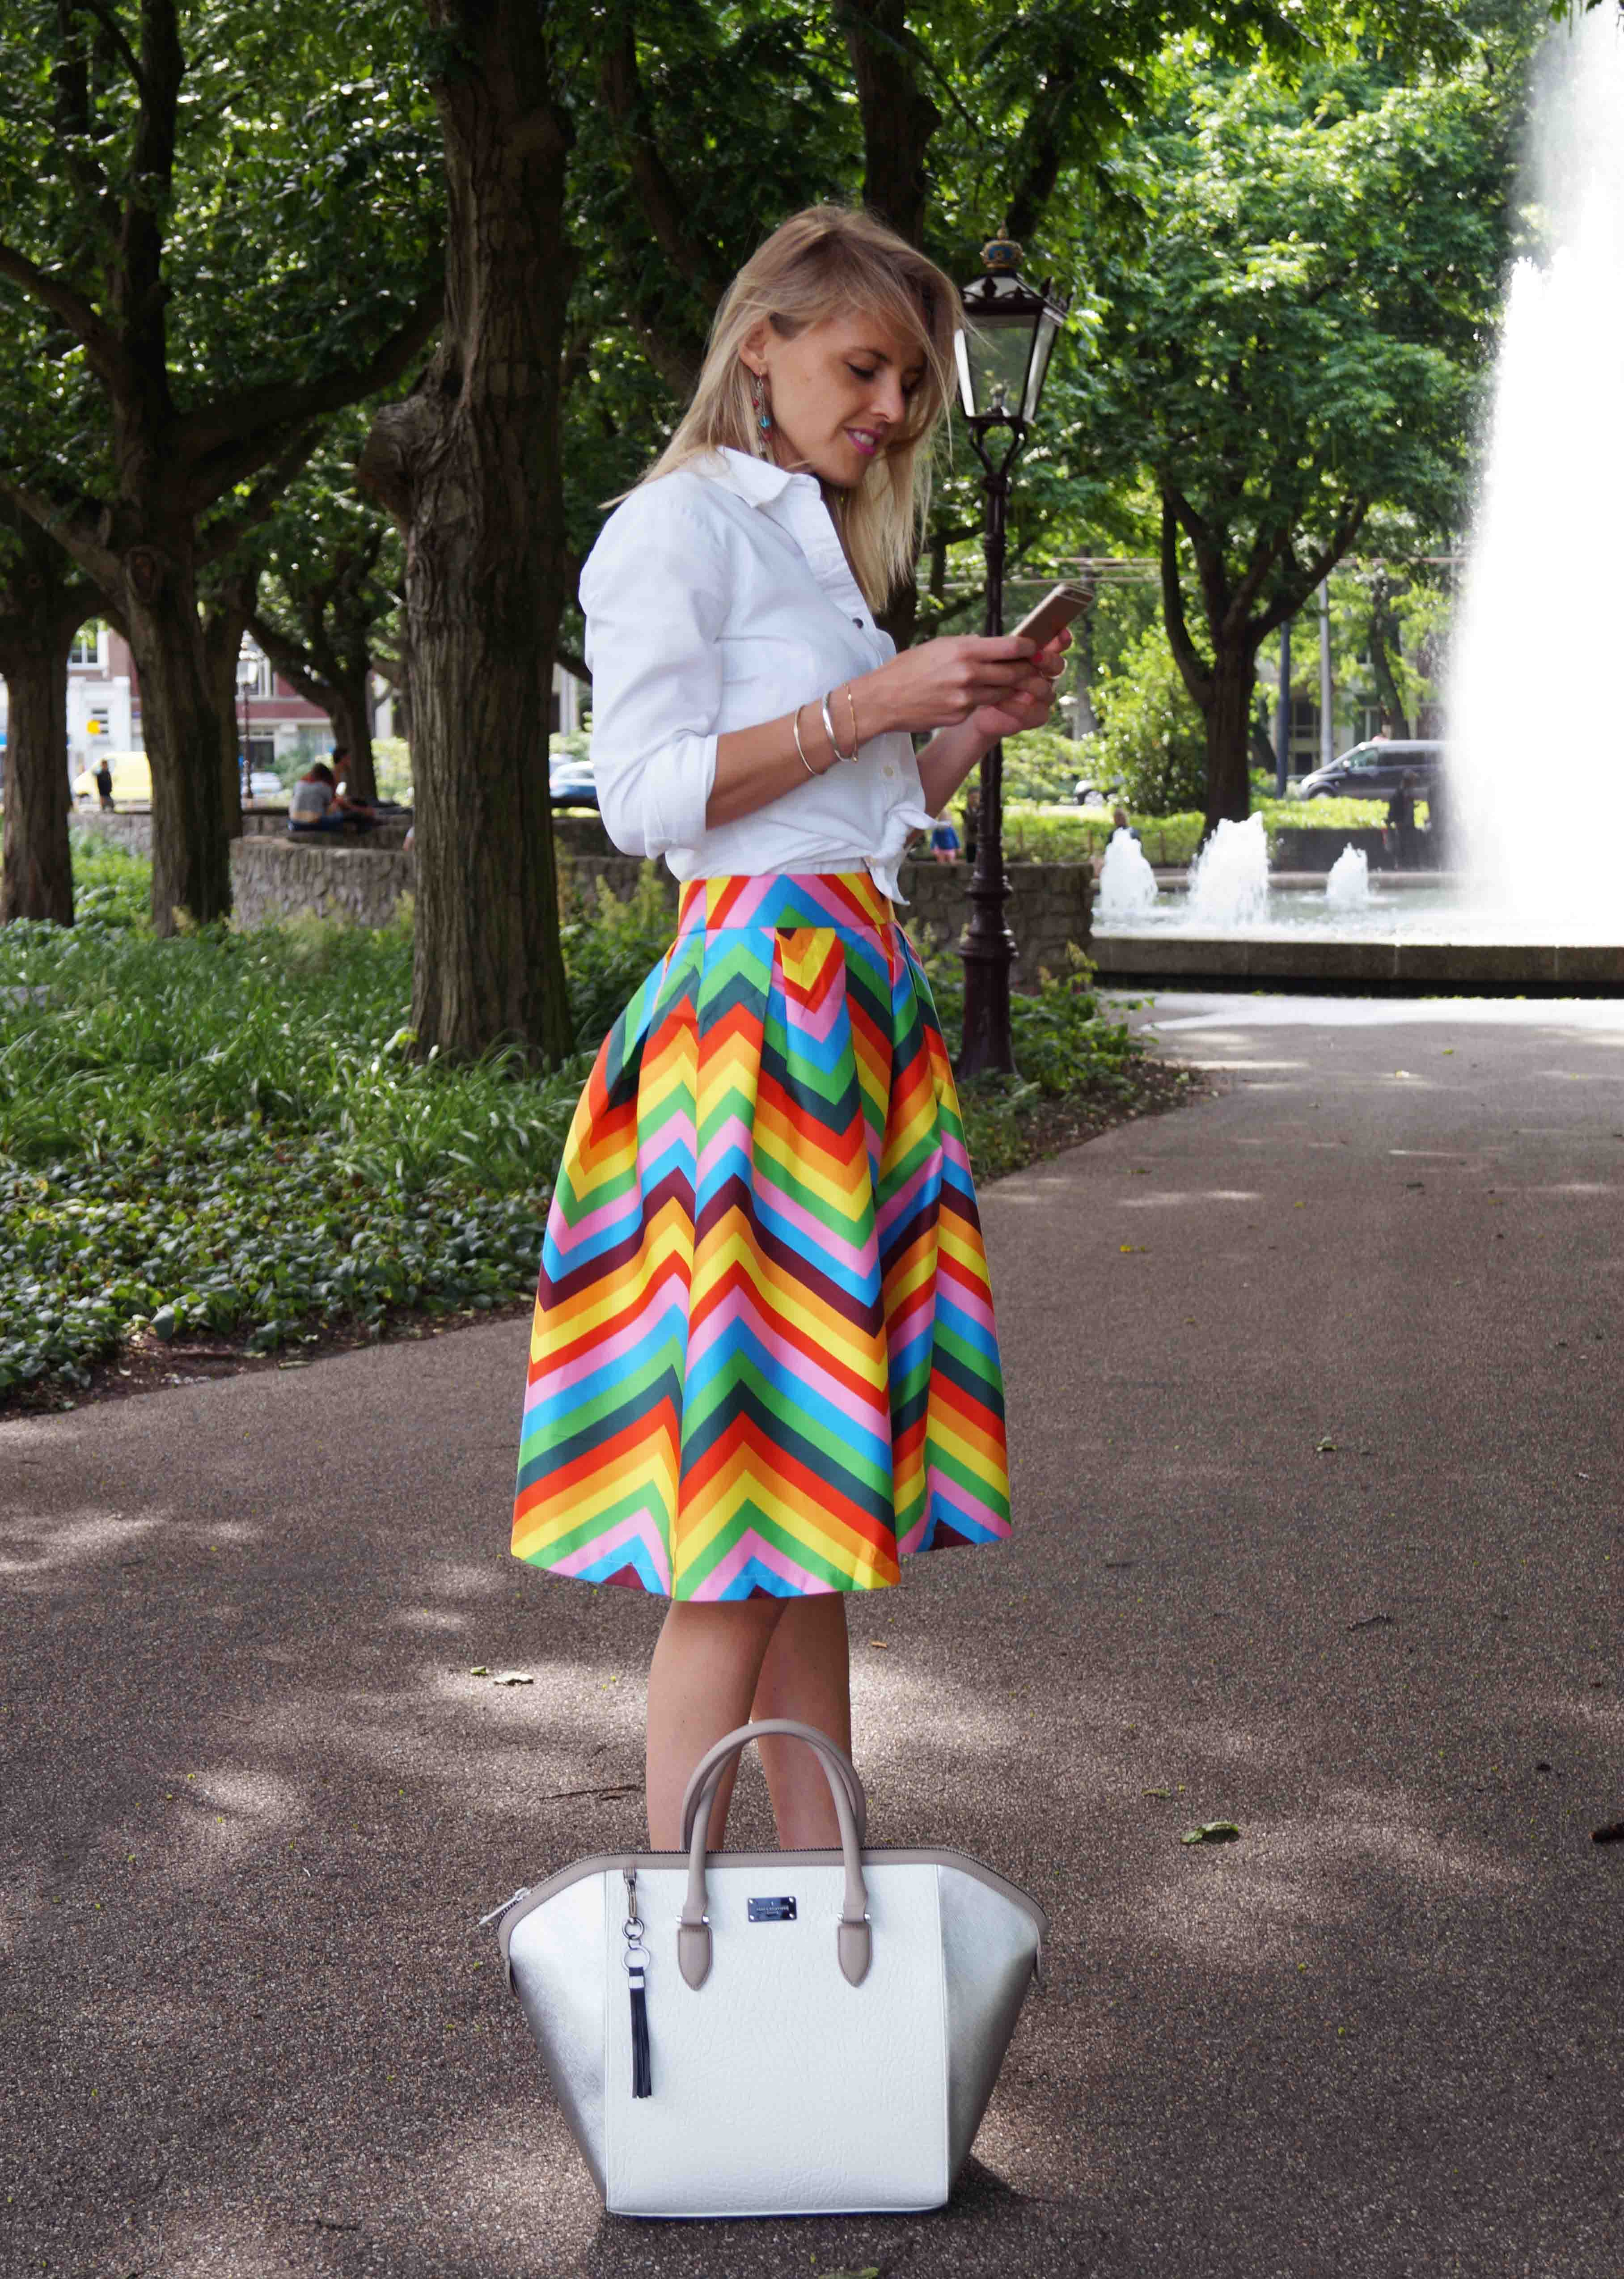 Bag at You - Fashion Blog - Paul's Boutique bags - Tassen - Colorful skirt and white shirt